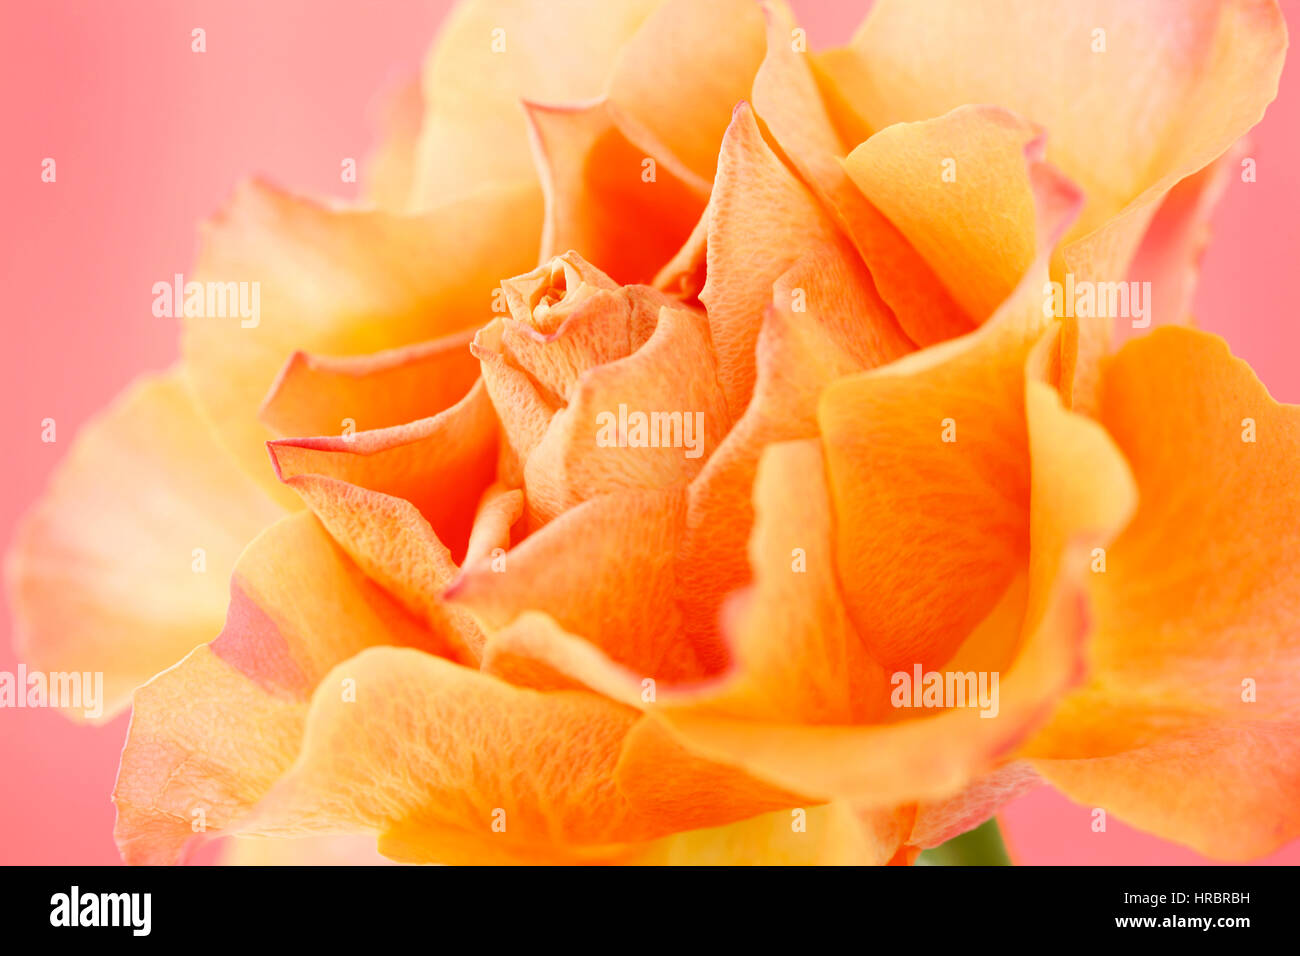 beautiful orange rose on pink still life - concept ageing Jane Ann Butler Photography  JABP1841 - Stock Image